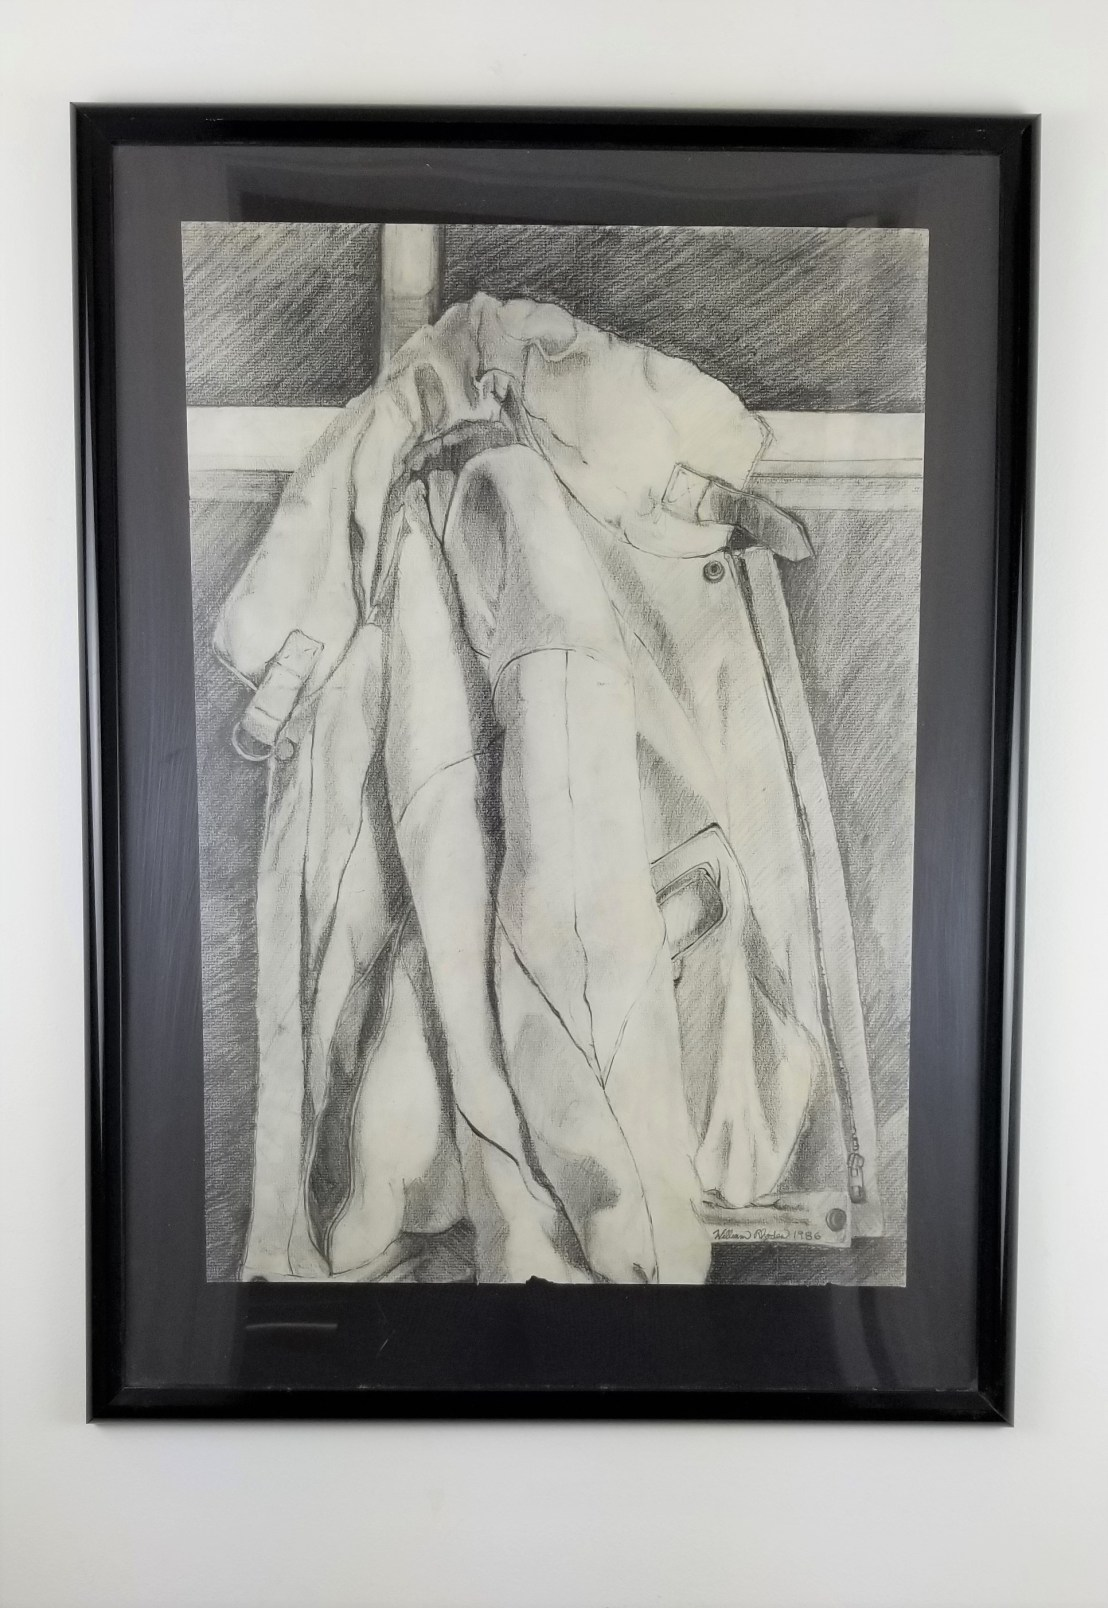 """""""Old Leather Jacket"""" (Comes in a frame) Pencil on paper; 29in x 21in x 1.5in; Year 1986; Suggested donation is $400"""